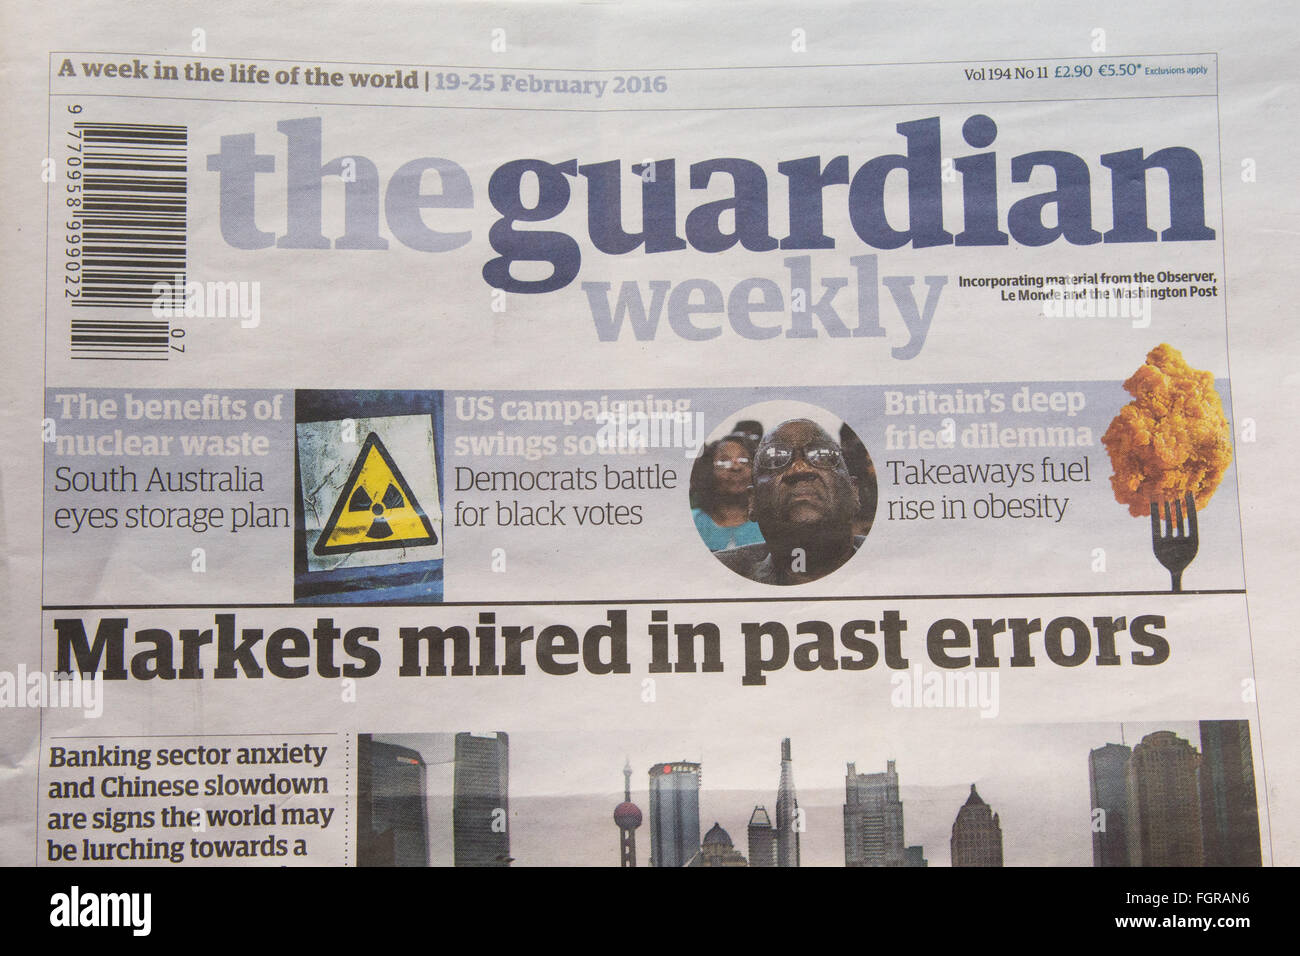 The guardian weekly newspaper - Stock Image